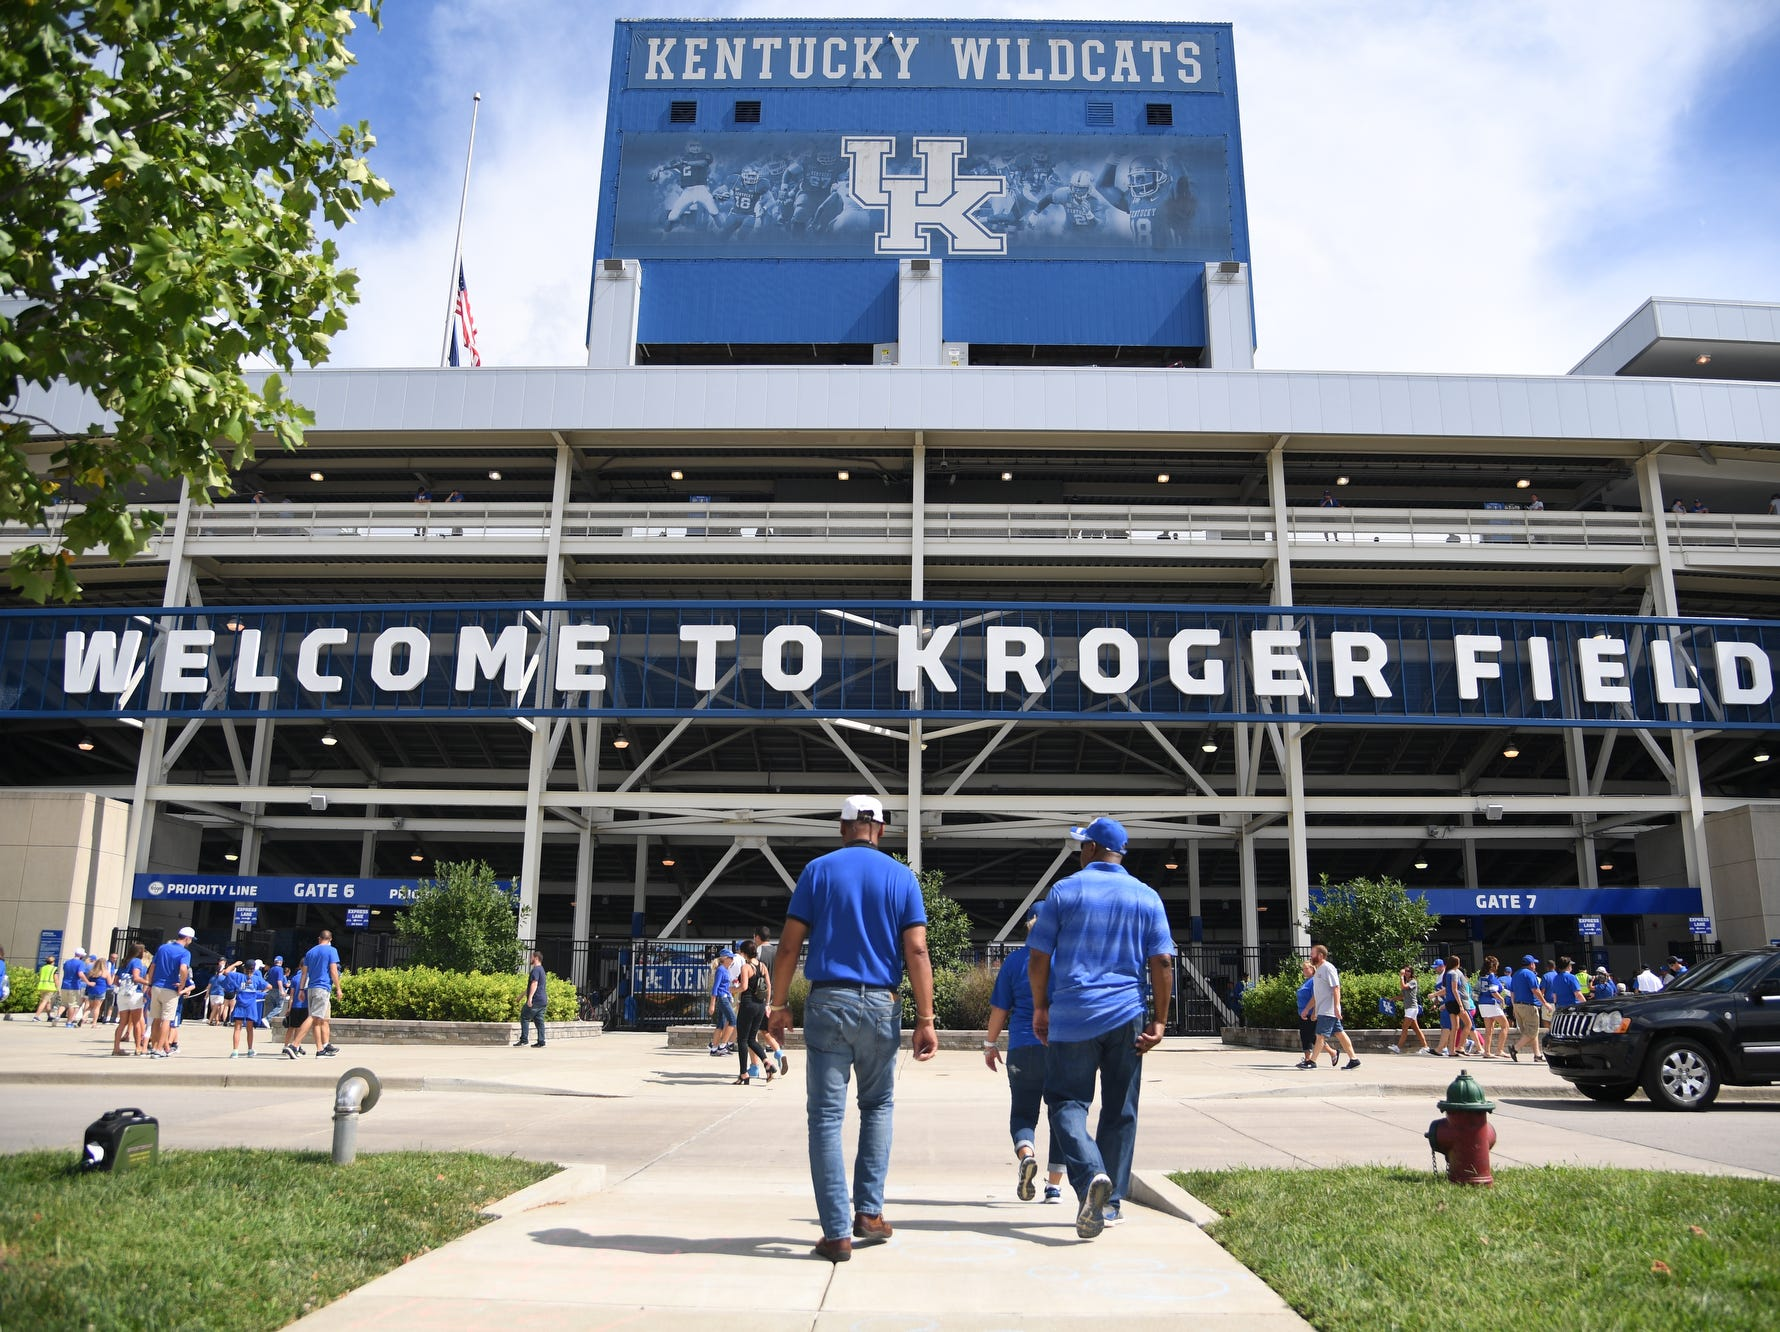 Fans arrive to the University of Kentucky football game against Central Michigan at Kroger Field in Lexington, Kentucky on Saturday, September 1, 2018.